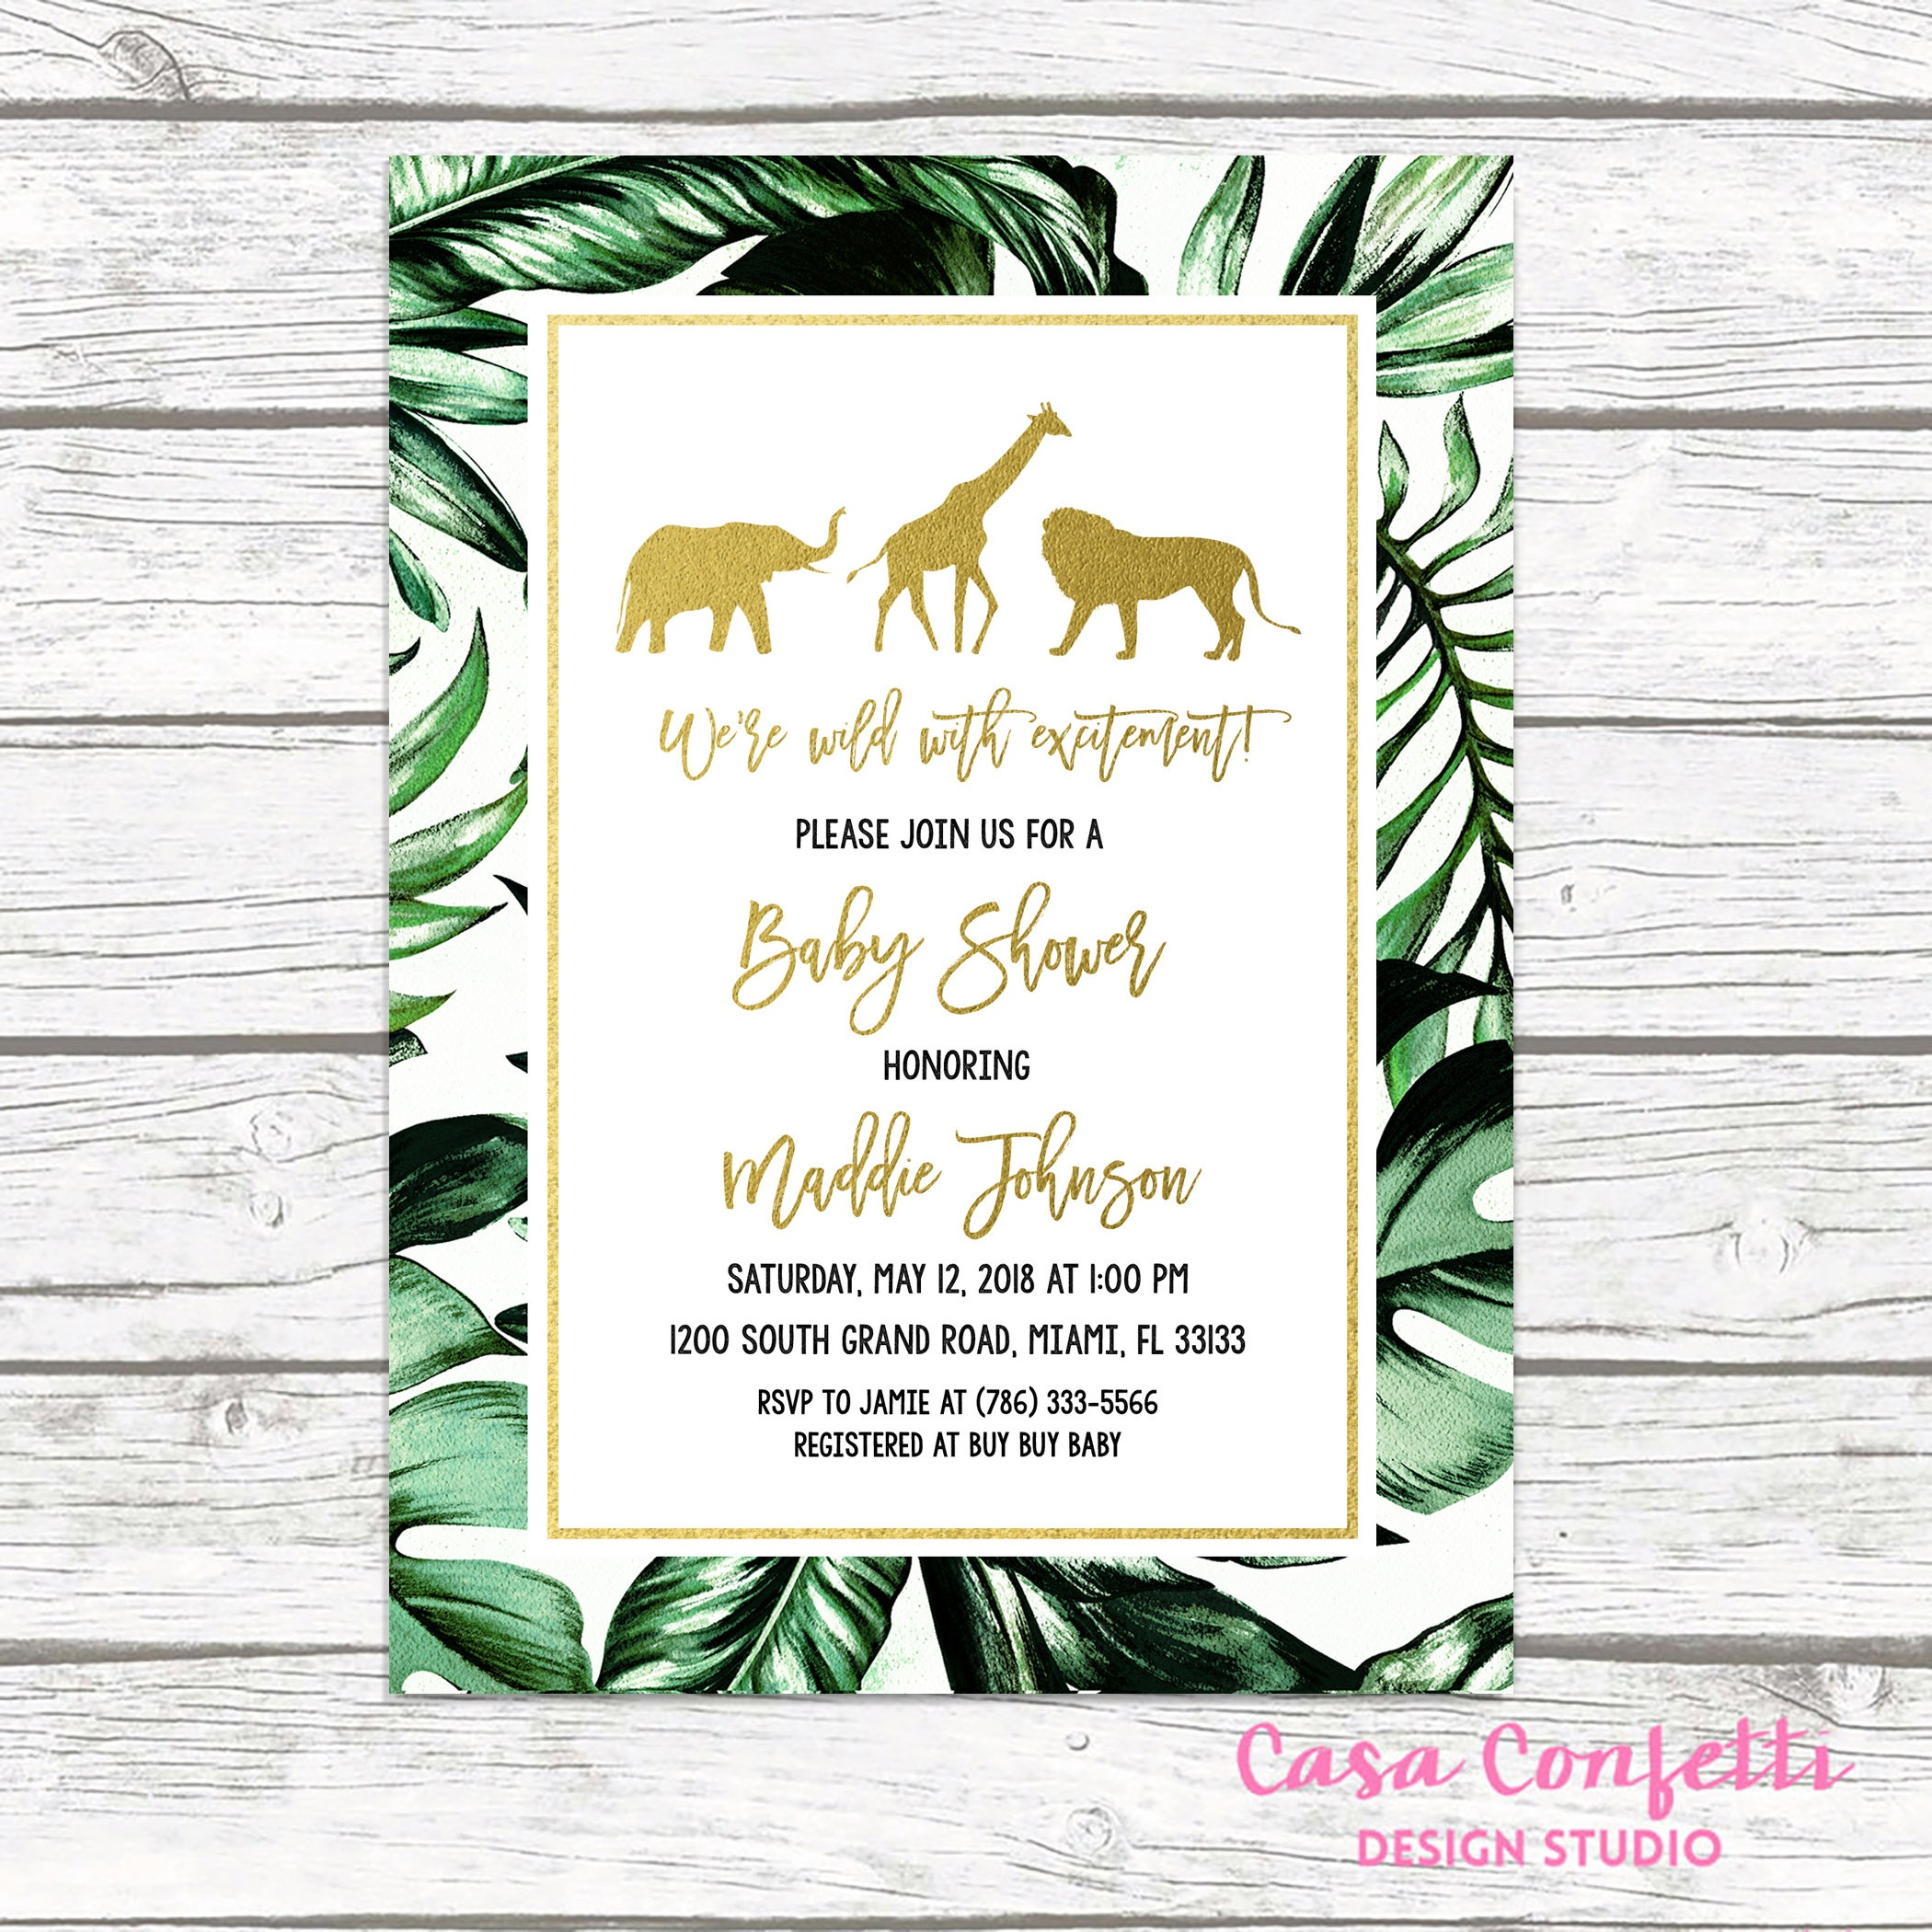 Safari Baby Shower Invitation, Gold Safari Baby Shower Invitation - Free Printable Jungle Safari Baby Shower Invitations